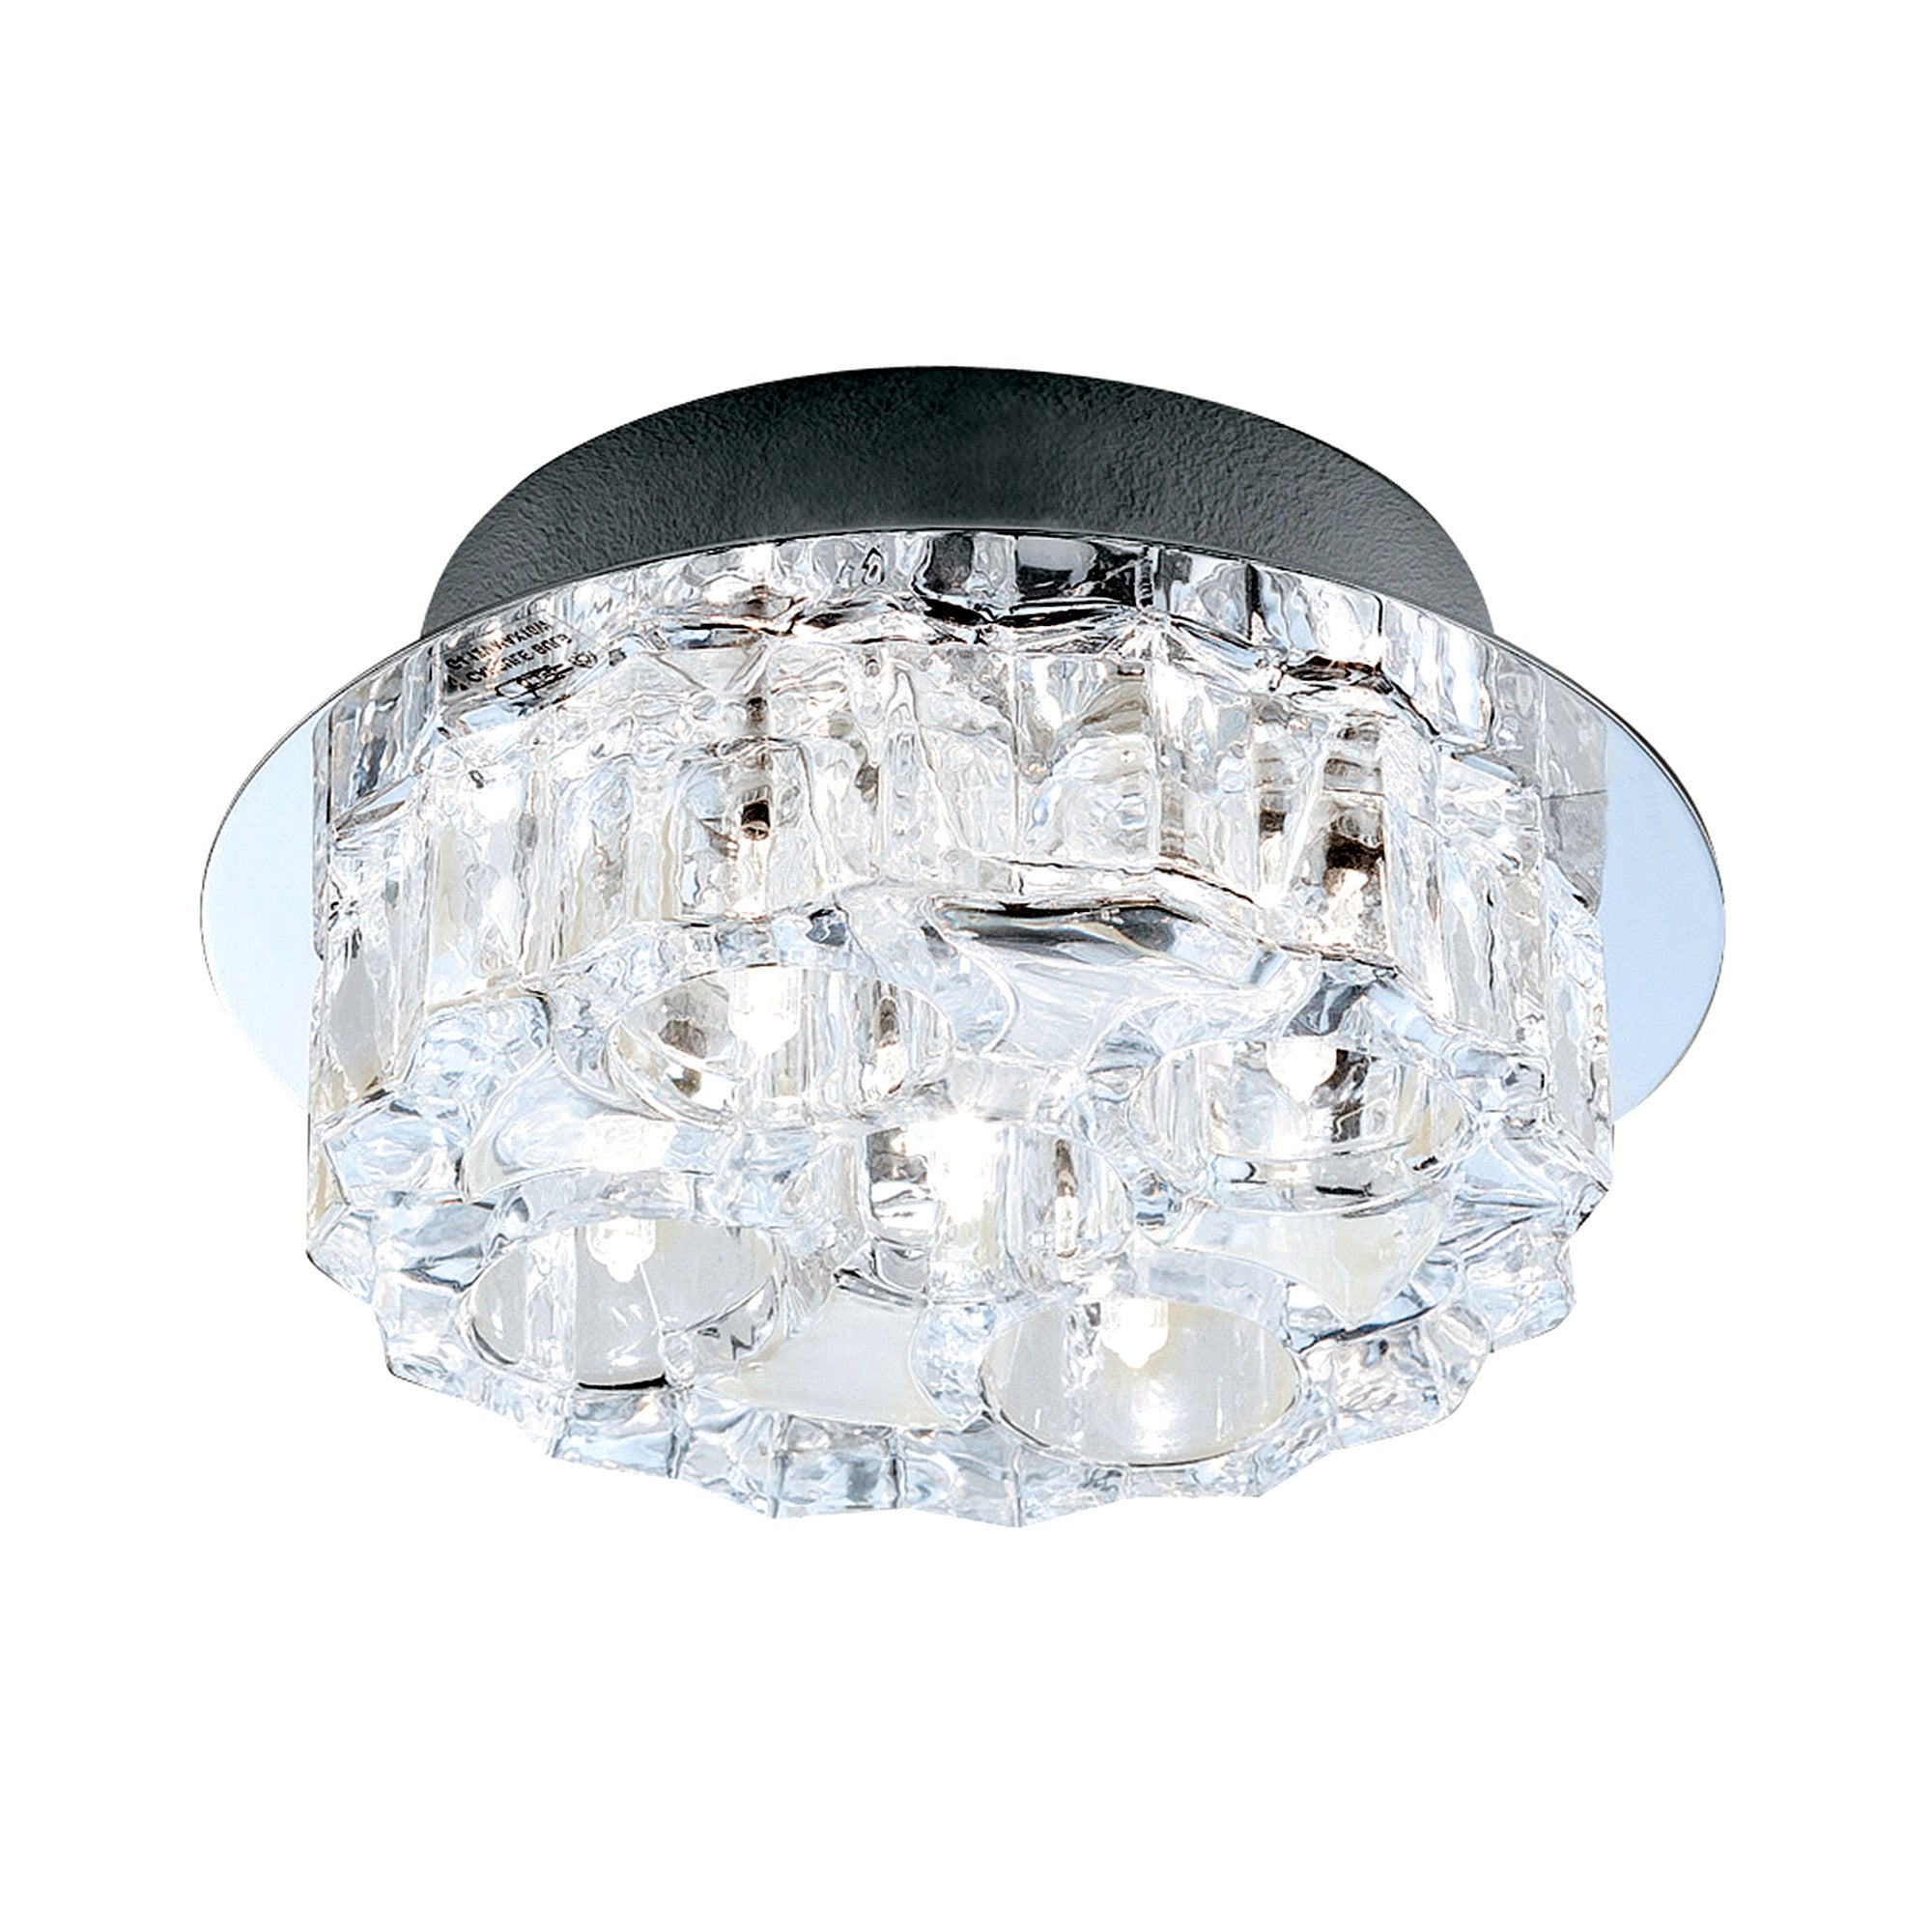 Cool Ice Compact Round Flush Light Fitting